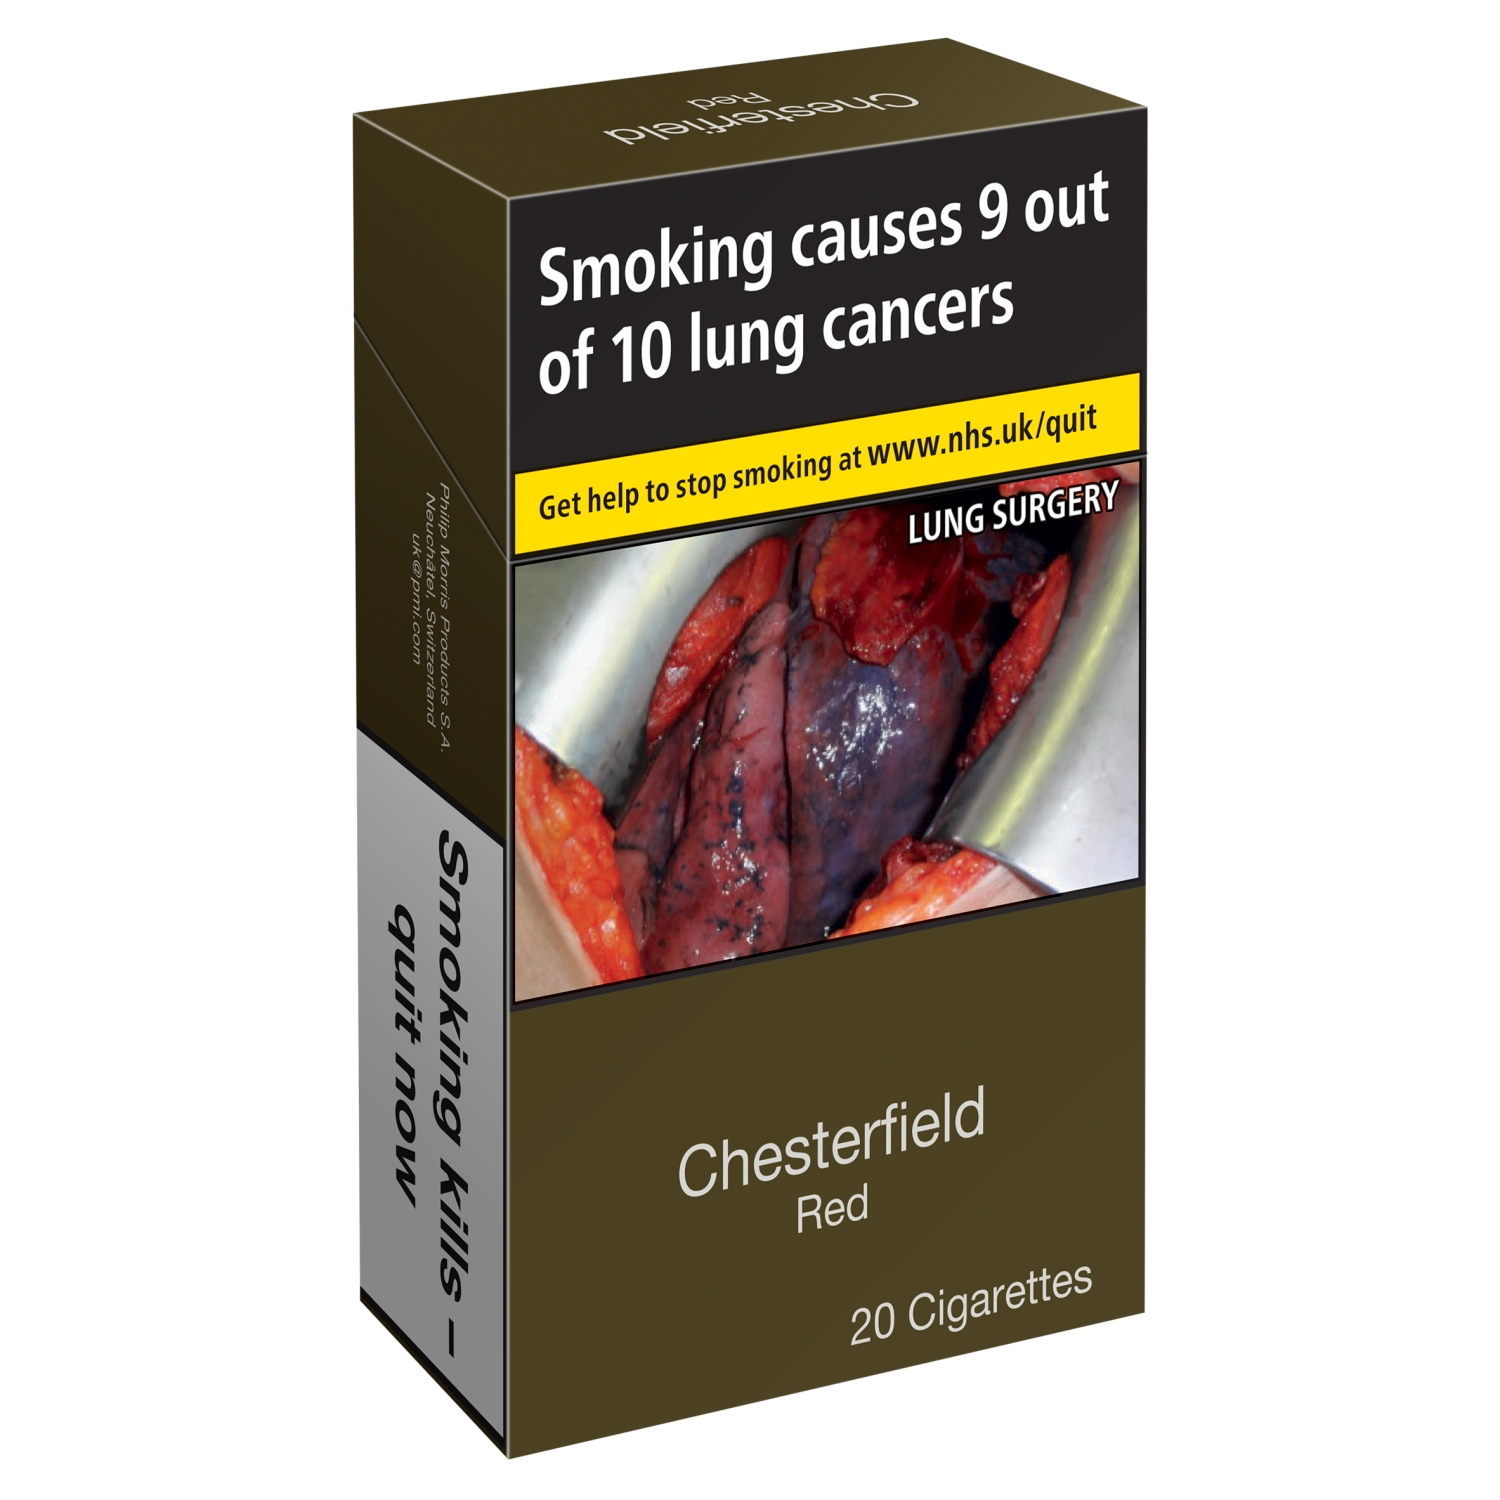 Chesterfield Red 20 Cigarettes